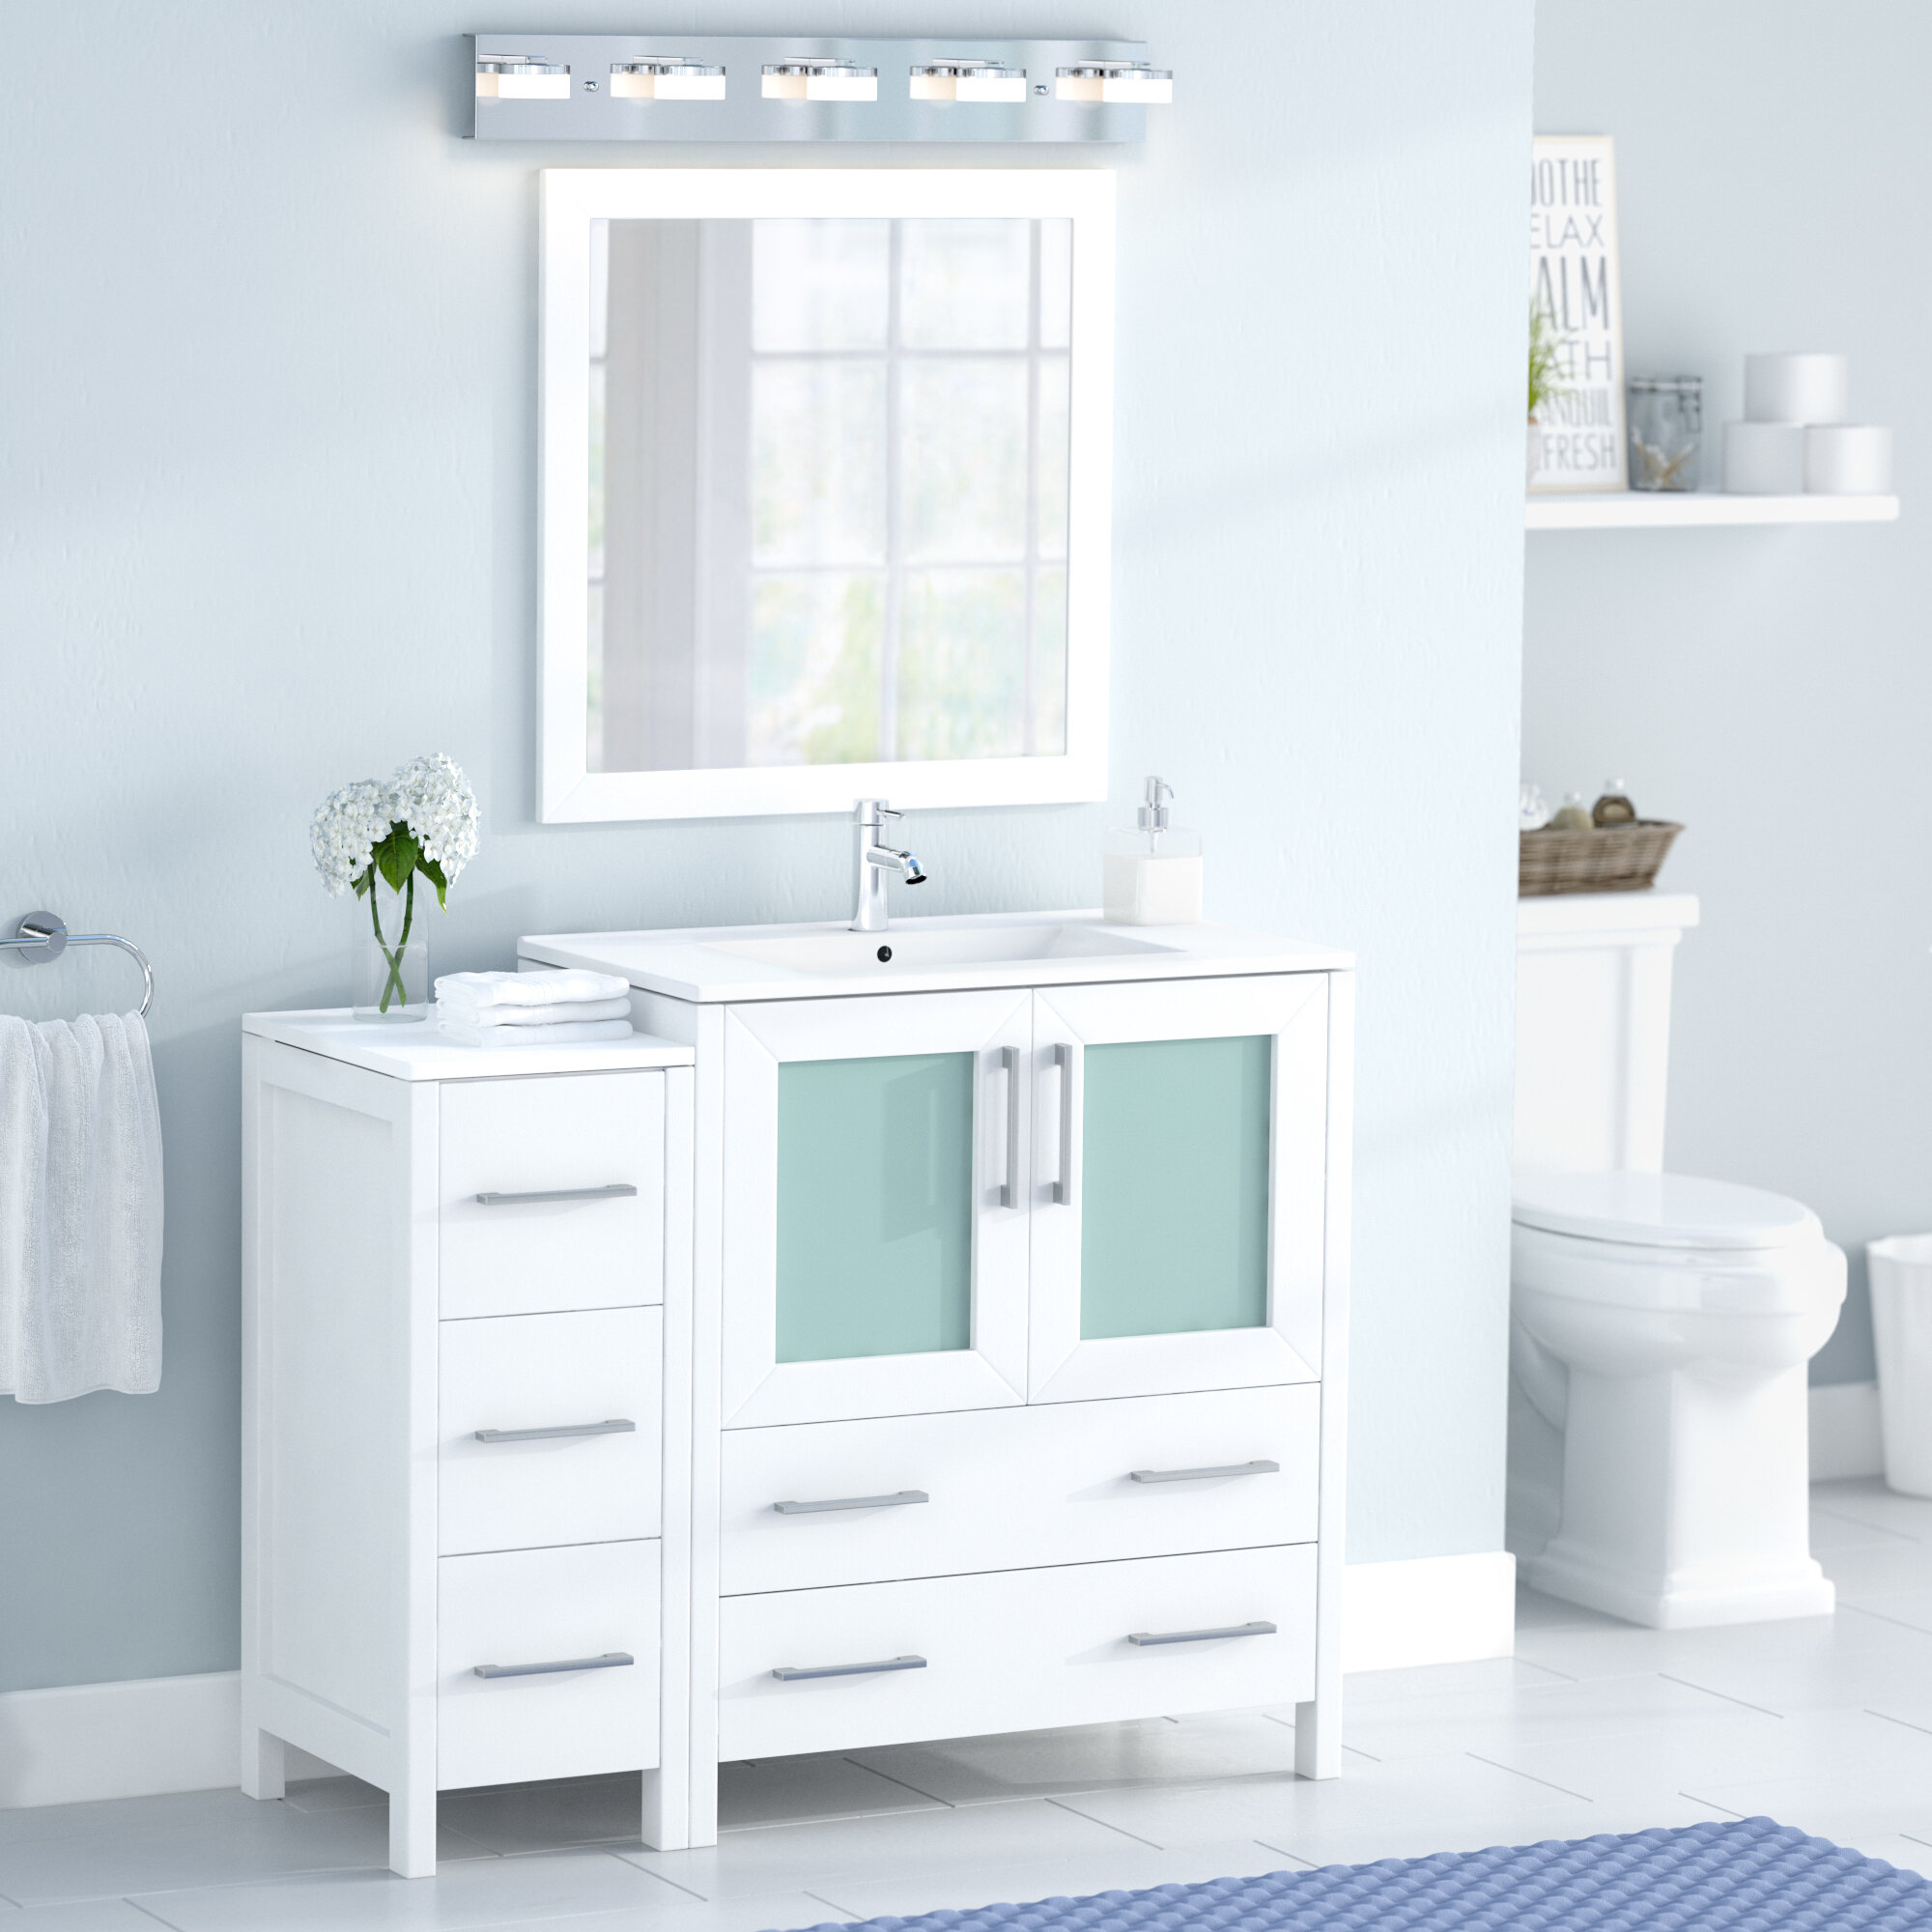 chest inch designer bathroom series hall co cole and by vanity lauren